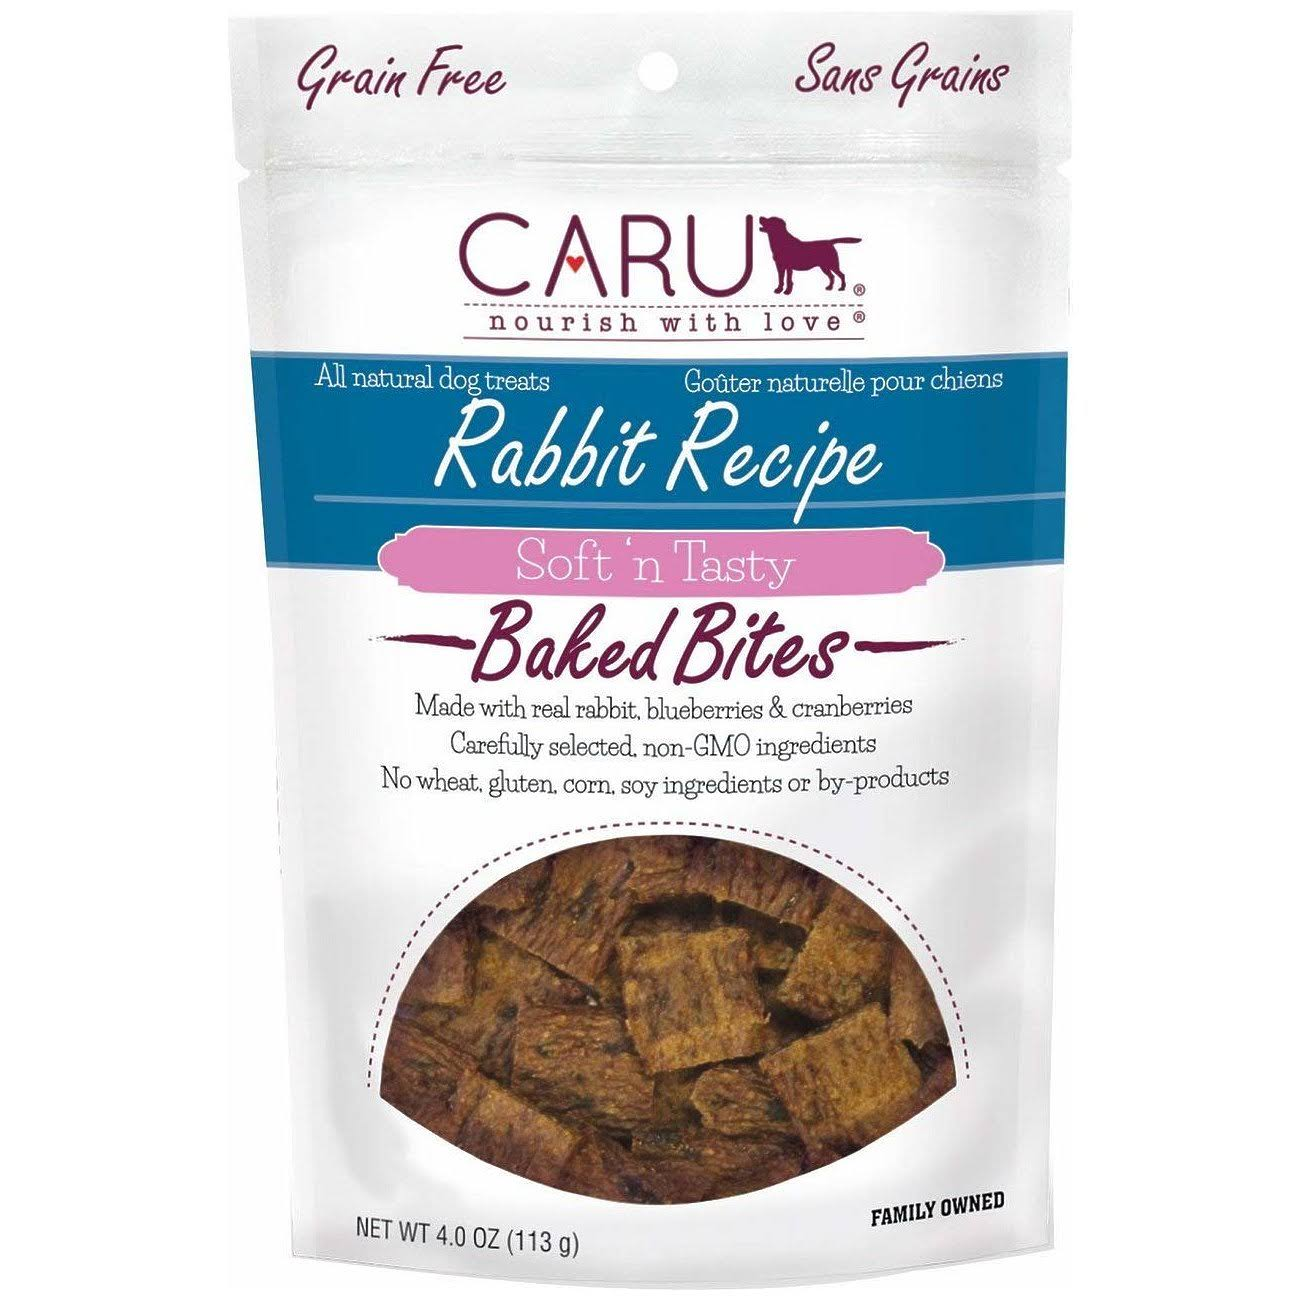 Caru Soft 'n Tasty Rabbit Recipe Baked Bites for Dogs - 3.75oz